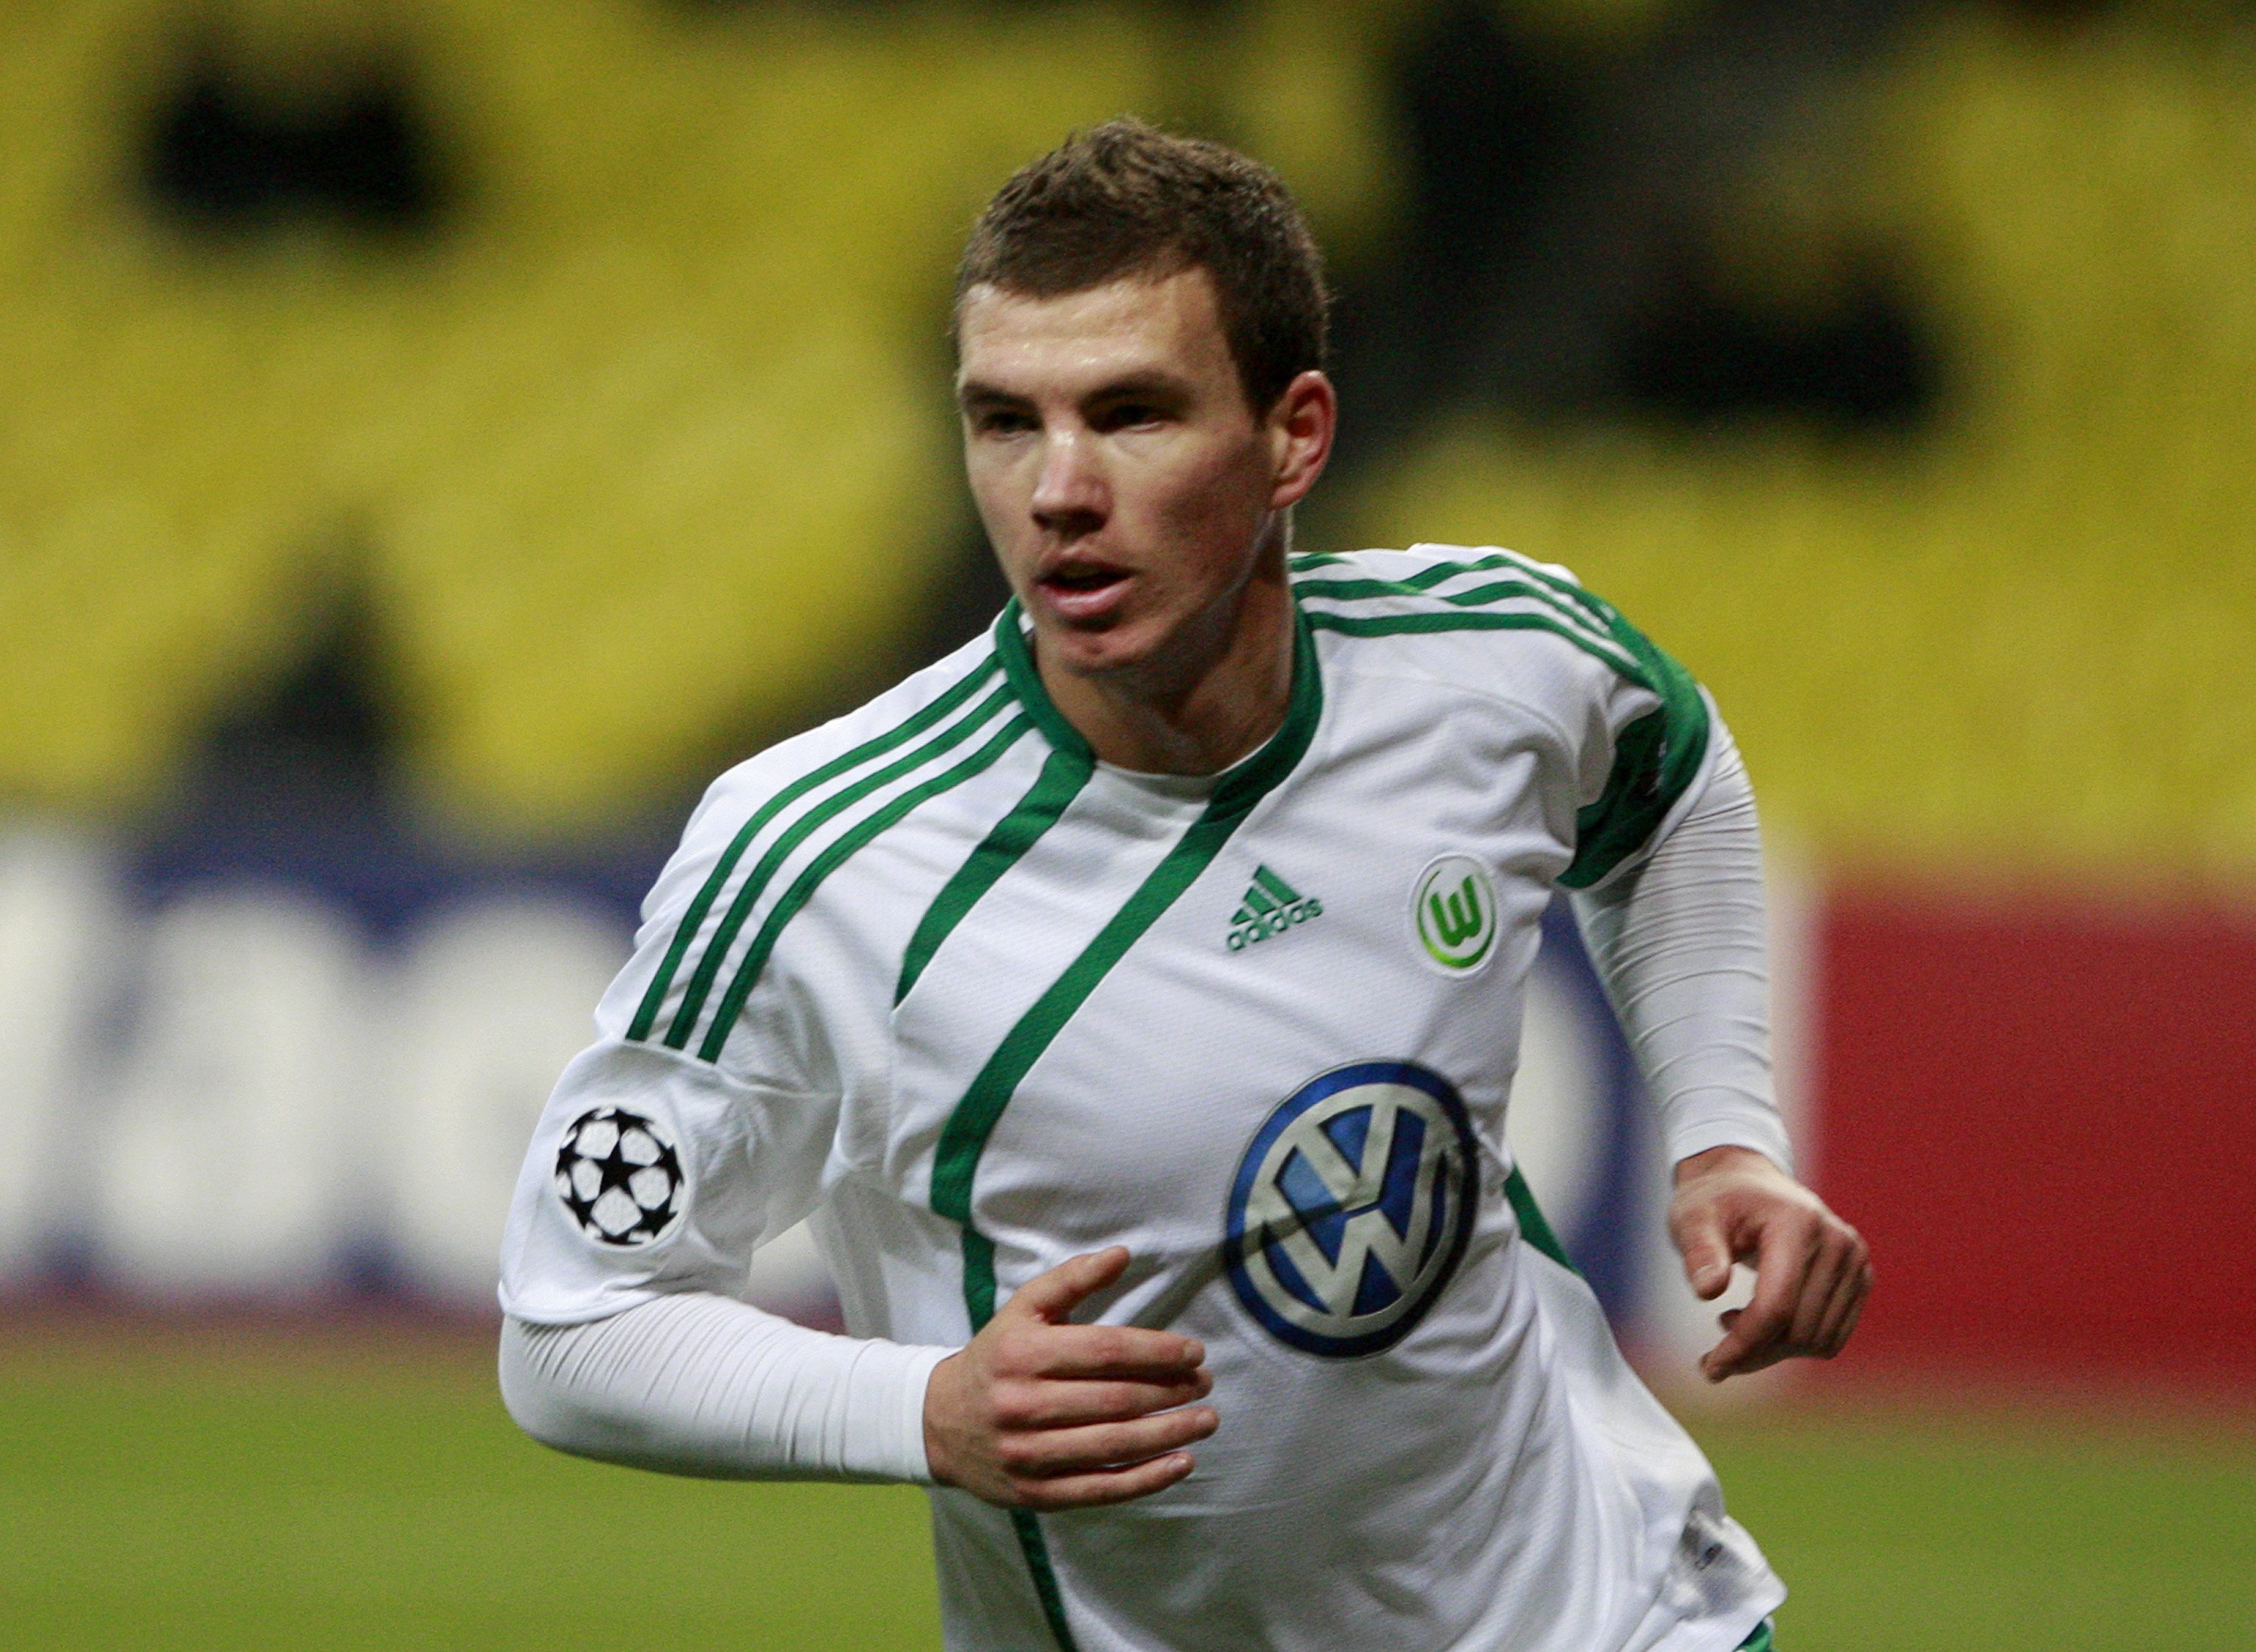 MOSCOW, RUSSIA - NOVEMBER 25:  Edin Dzeko of VfL Wolfsburg celebrates after scoring the first goal during the UEFA Champions League group B match between CSKA Moscow and VfL Wolfsburg at the Luzhniki Stadium on November 25, 2009 in Moscow, Russia.  (Photo